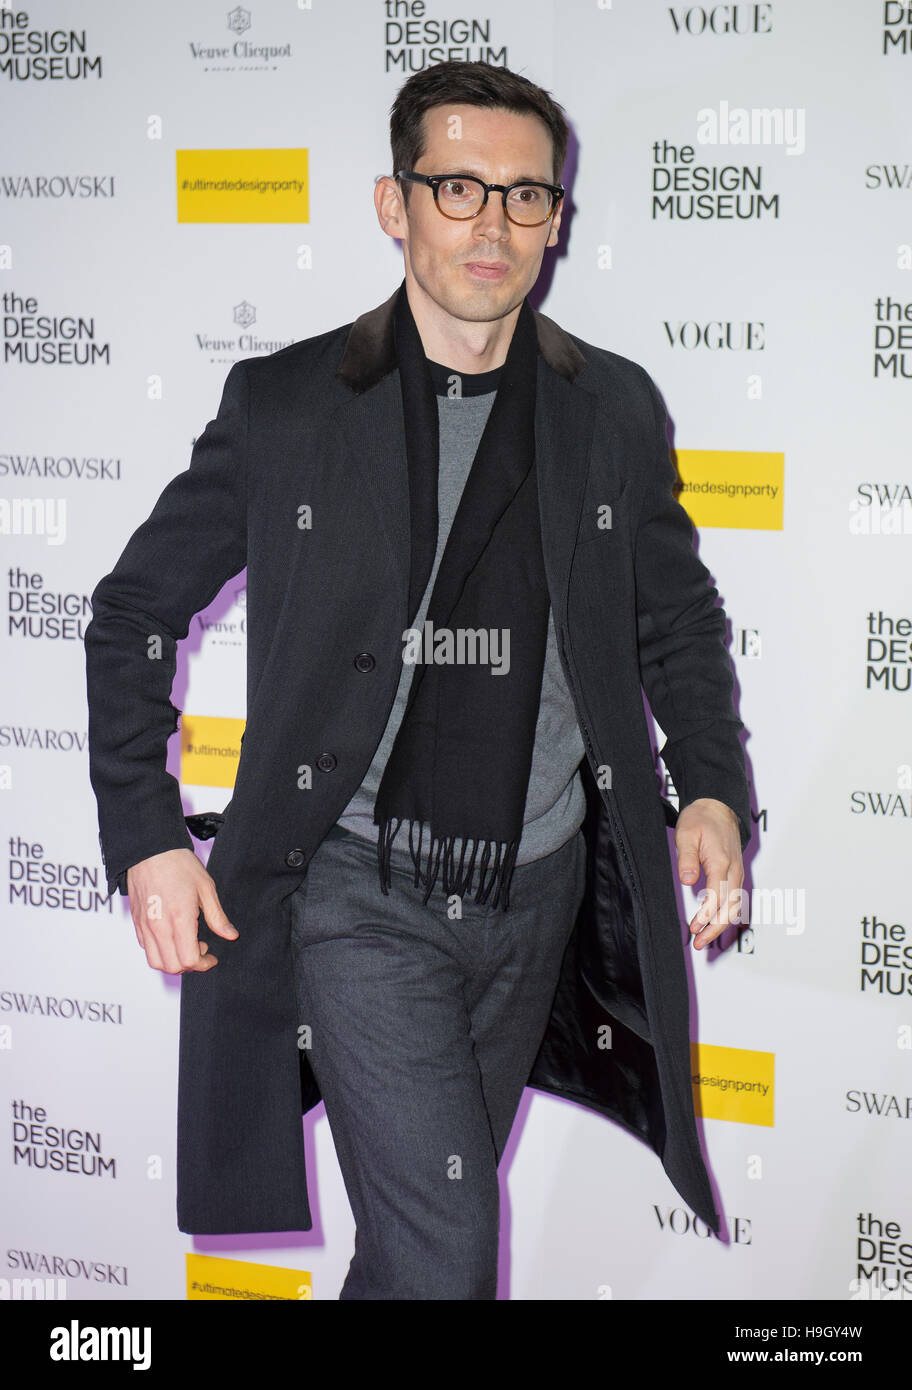 London, UK. 22nd Nov, 2016. Erdem Moralioglu attends The Design Museum VIP launch on November 22, 2016 in London, - Stock Image